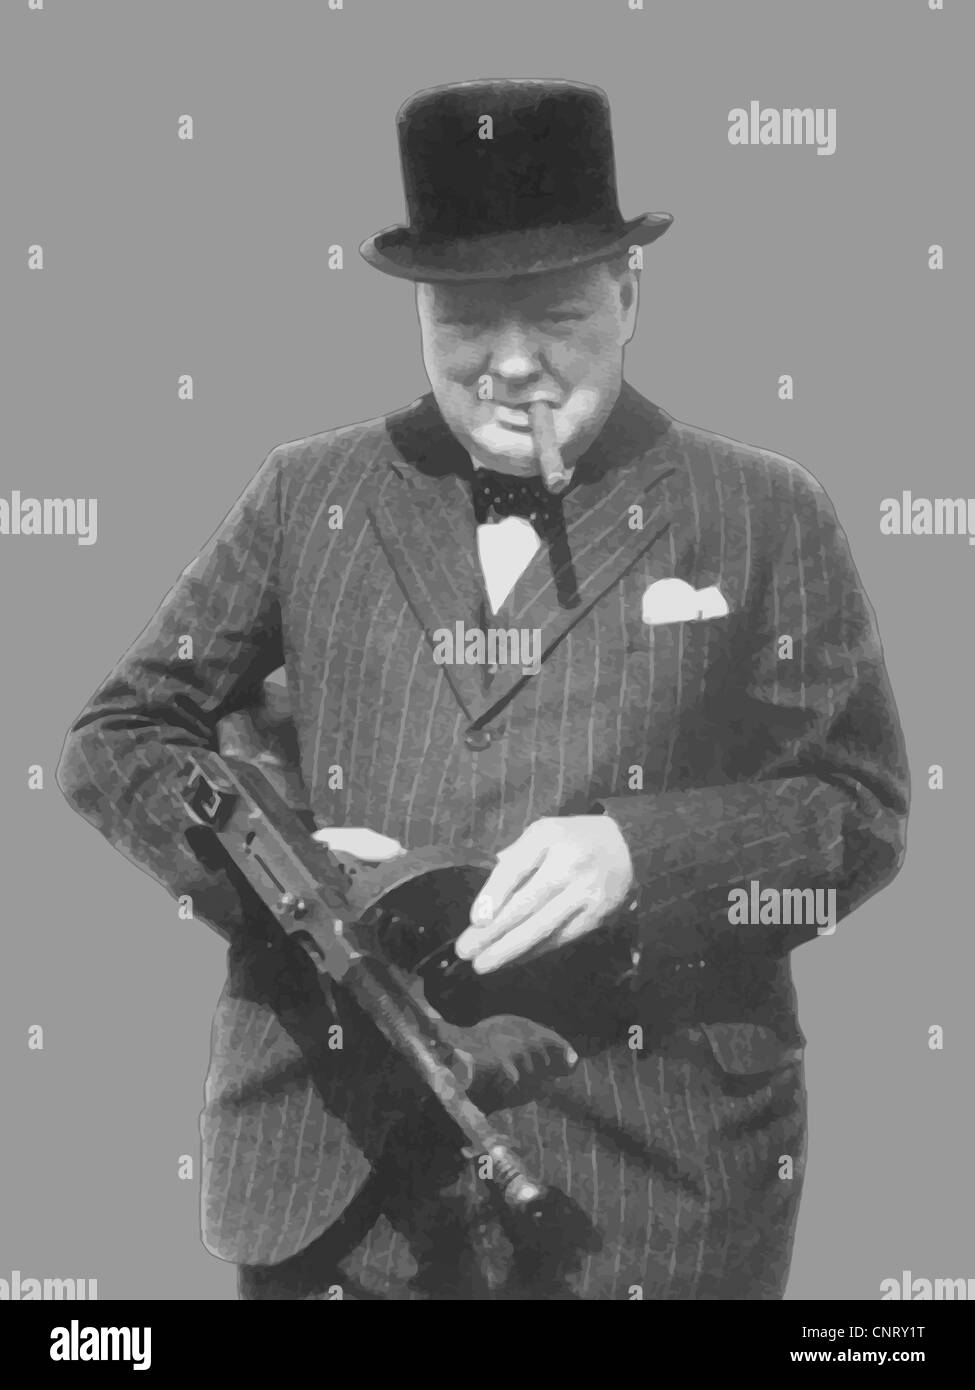 Digitally restored vector photo of Sir Winston Churchill with a Tommy Gun. - Stock Image